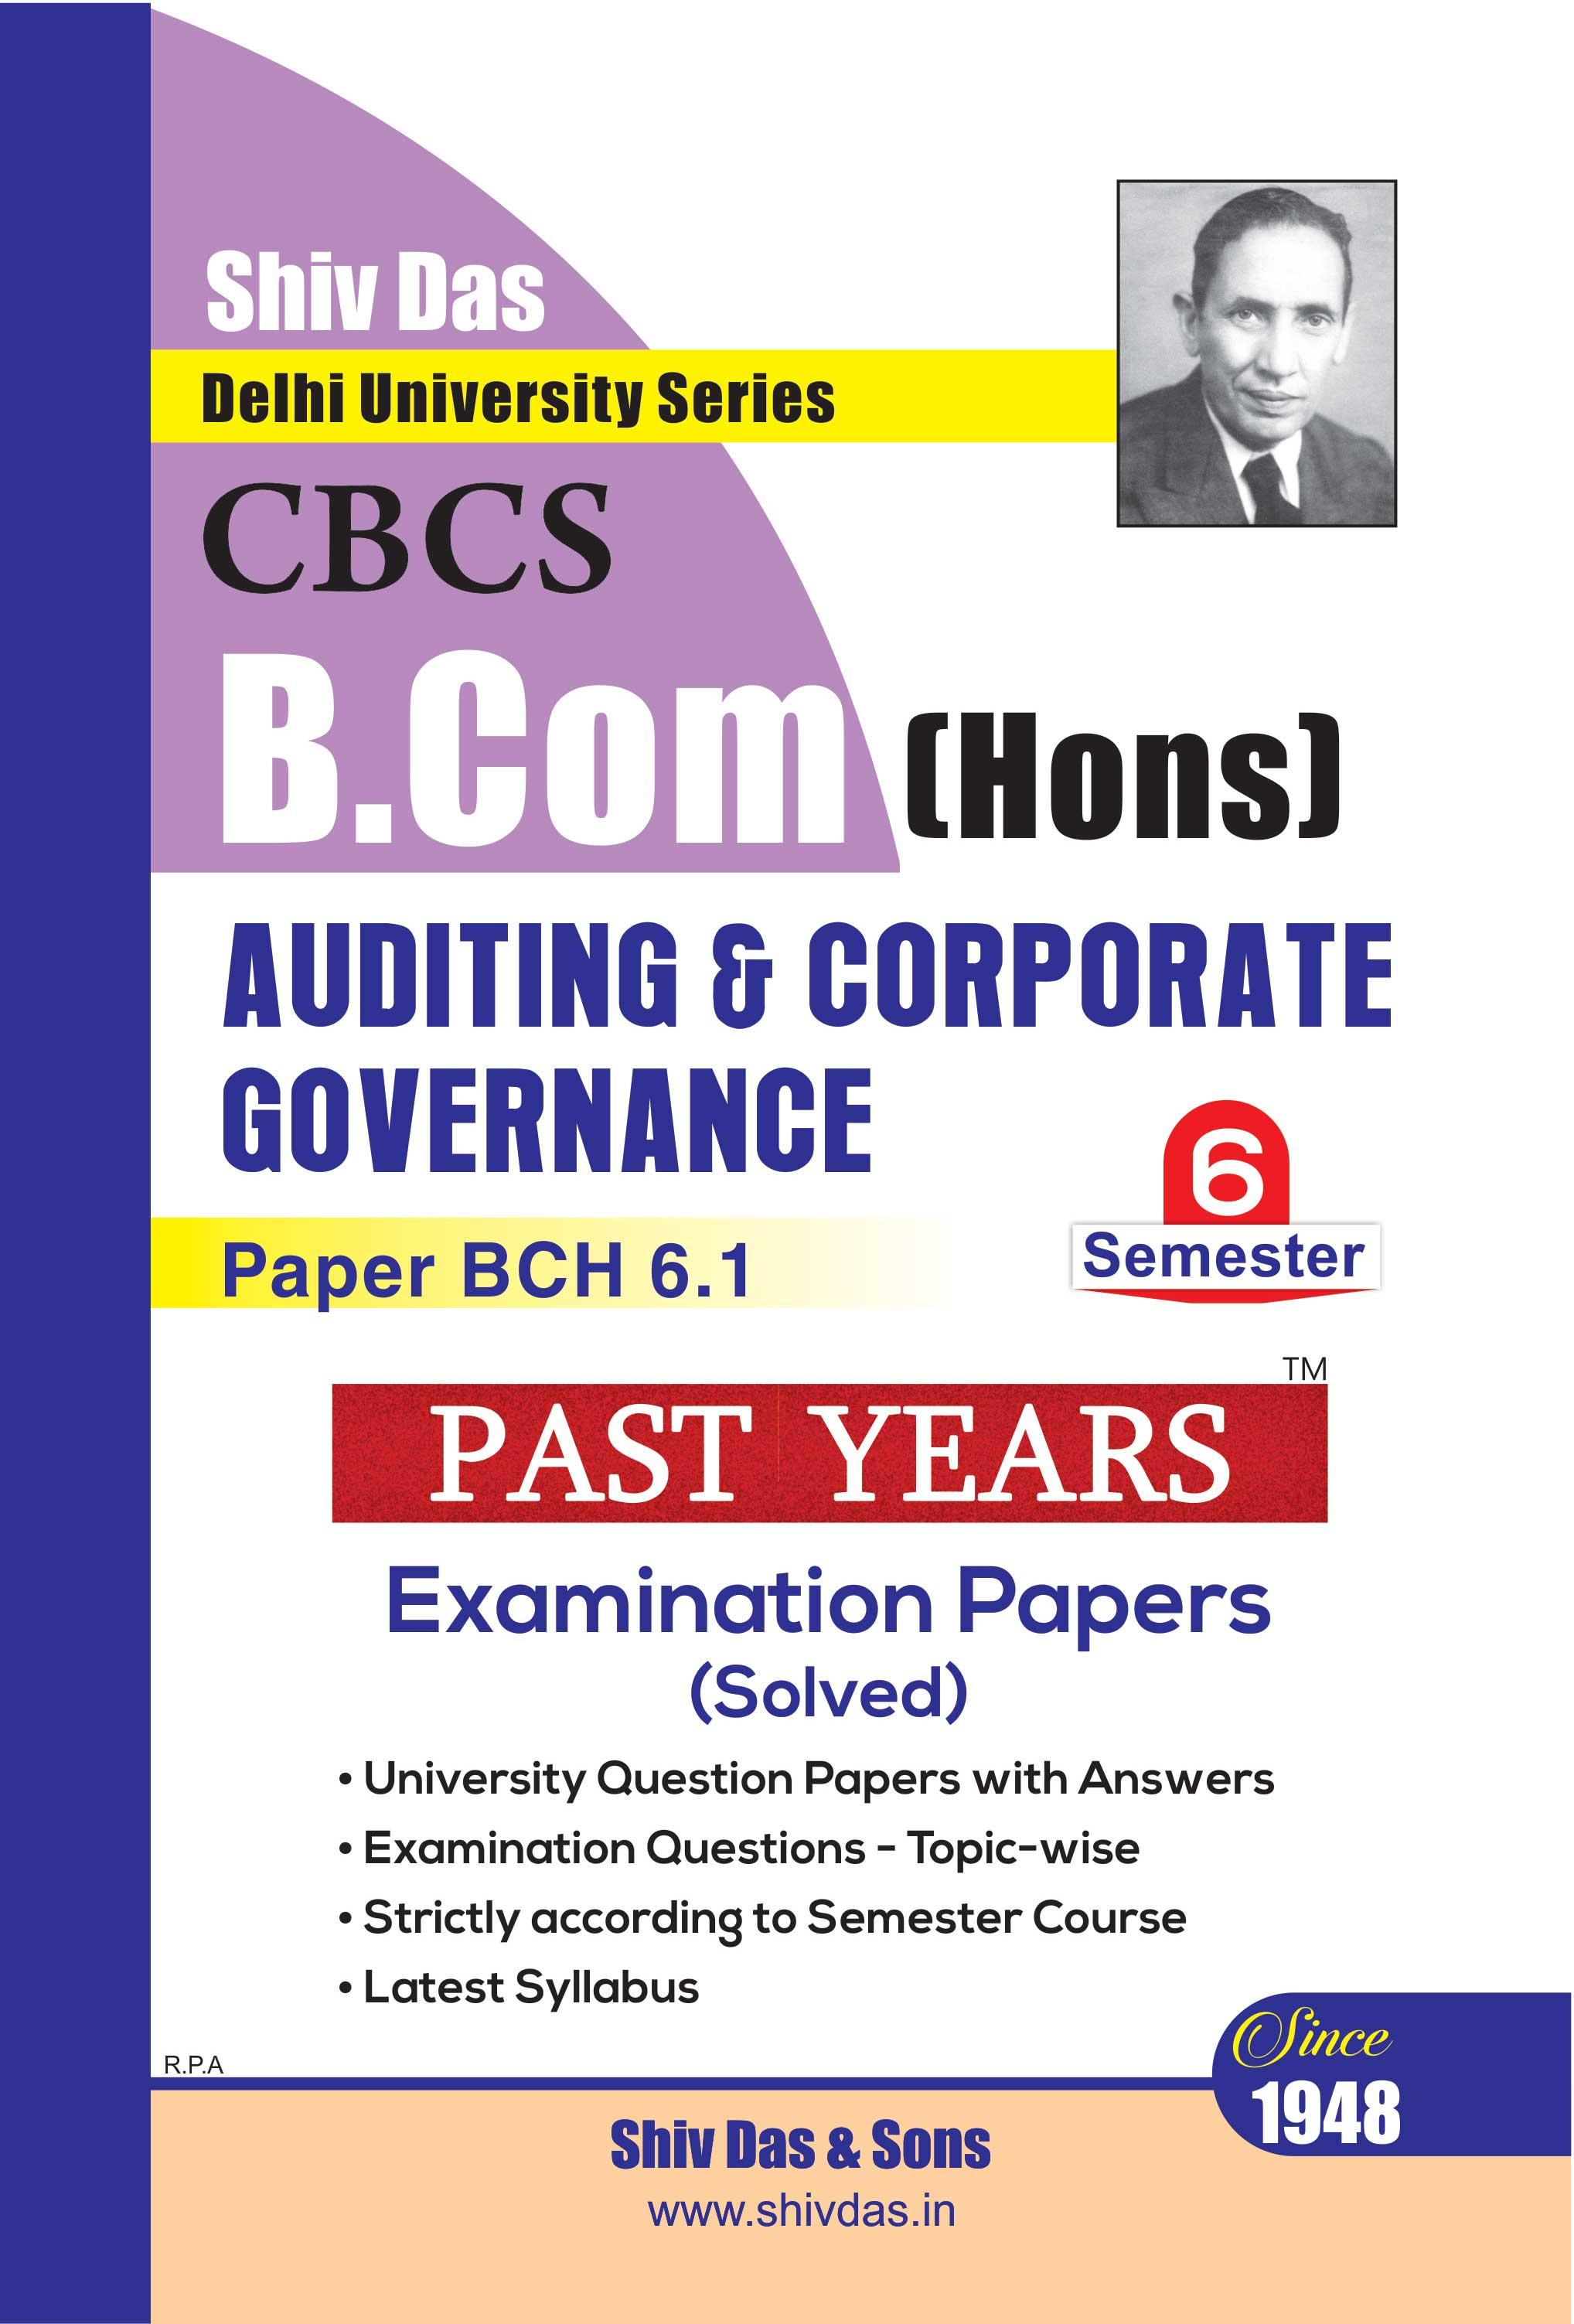 Auditing & Corporate Governance for B.Com Hons Semester 6 for Delhi University by Shiv Das